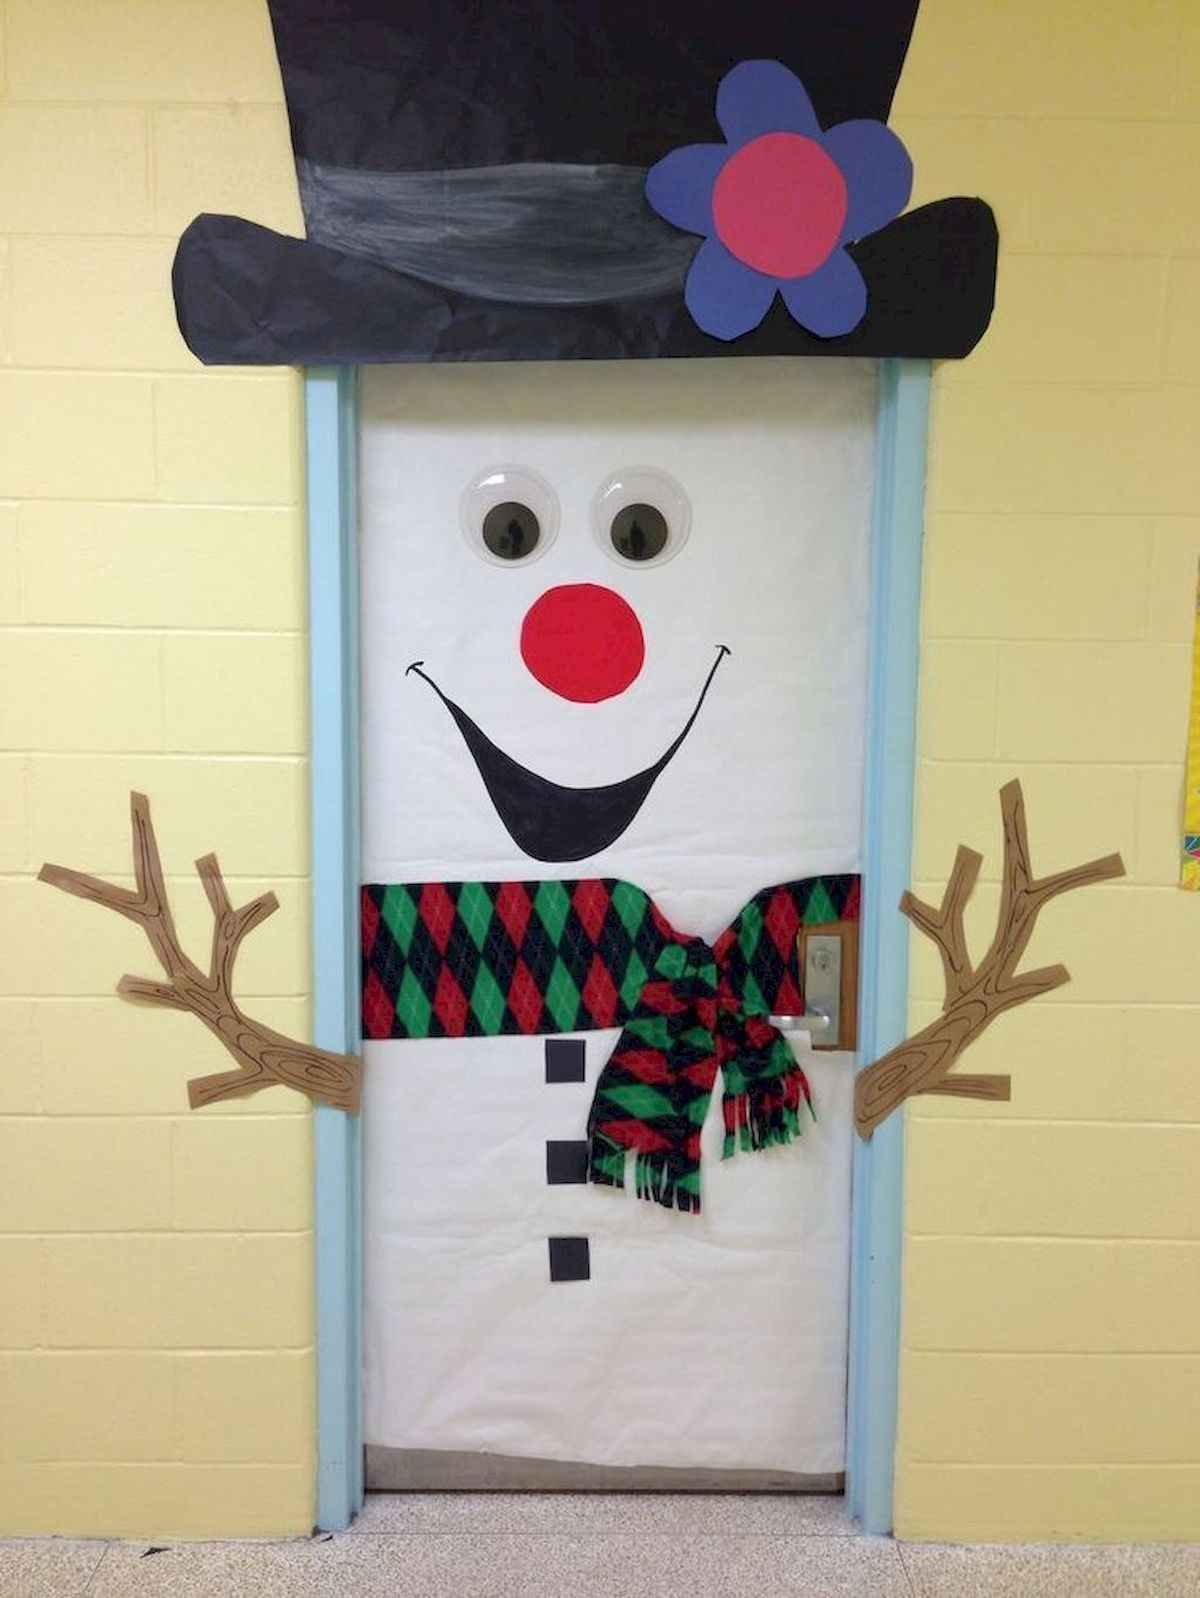 40 Simple DIY Christmas Door Decorations For Home And School (25 #christmasdoordecorationsforschool 40 Simple DIY Christmas Door Decorations For Home And School (25) #christmasdoordecorationsforschool